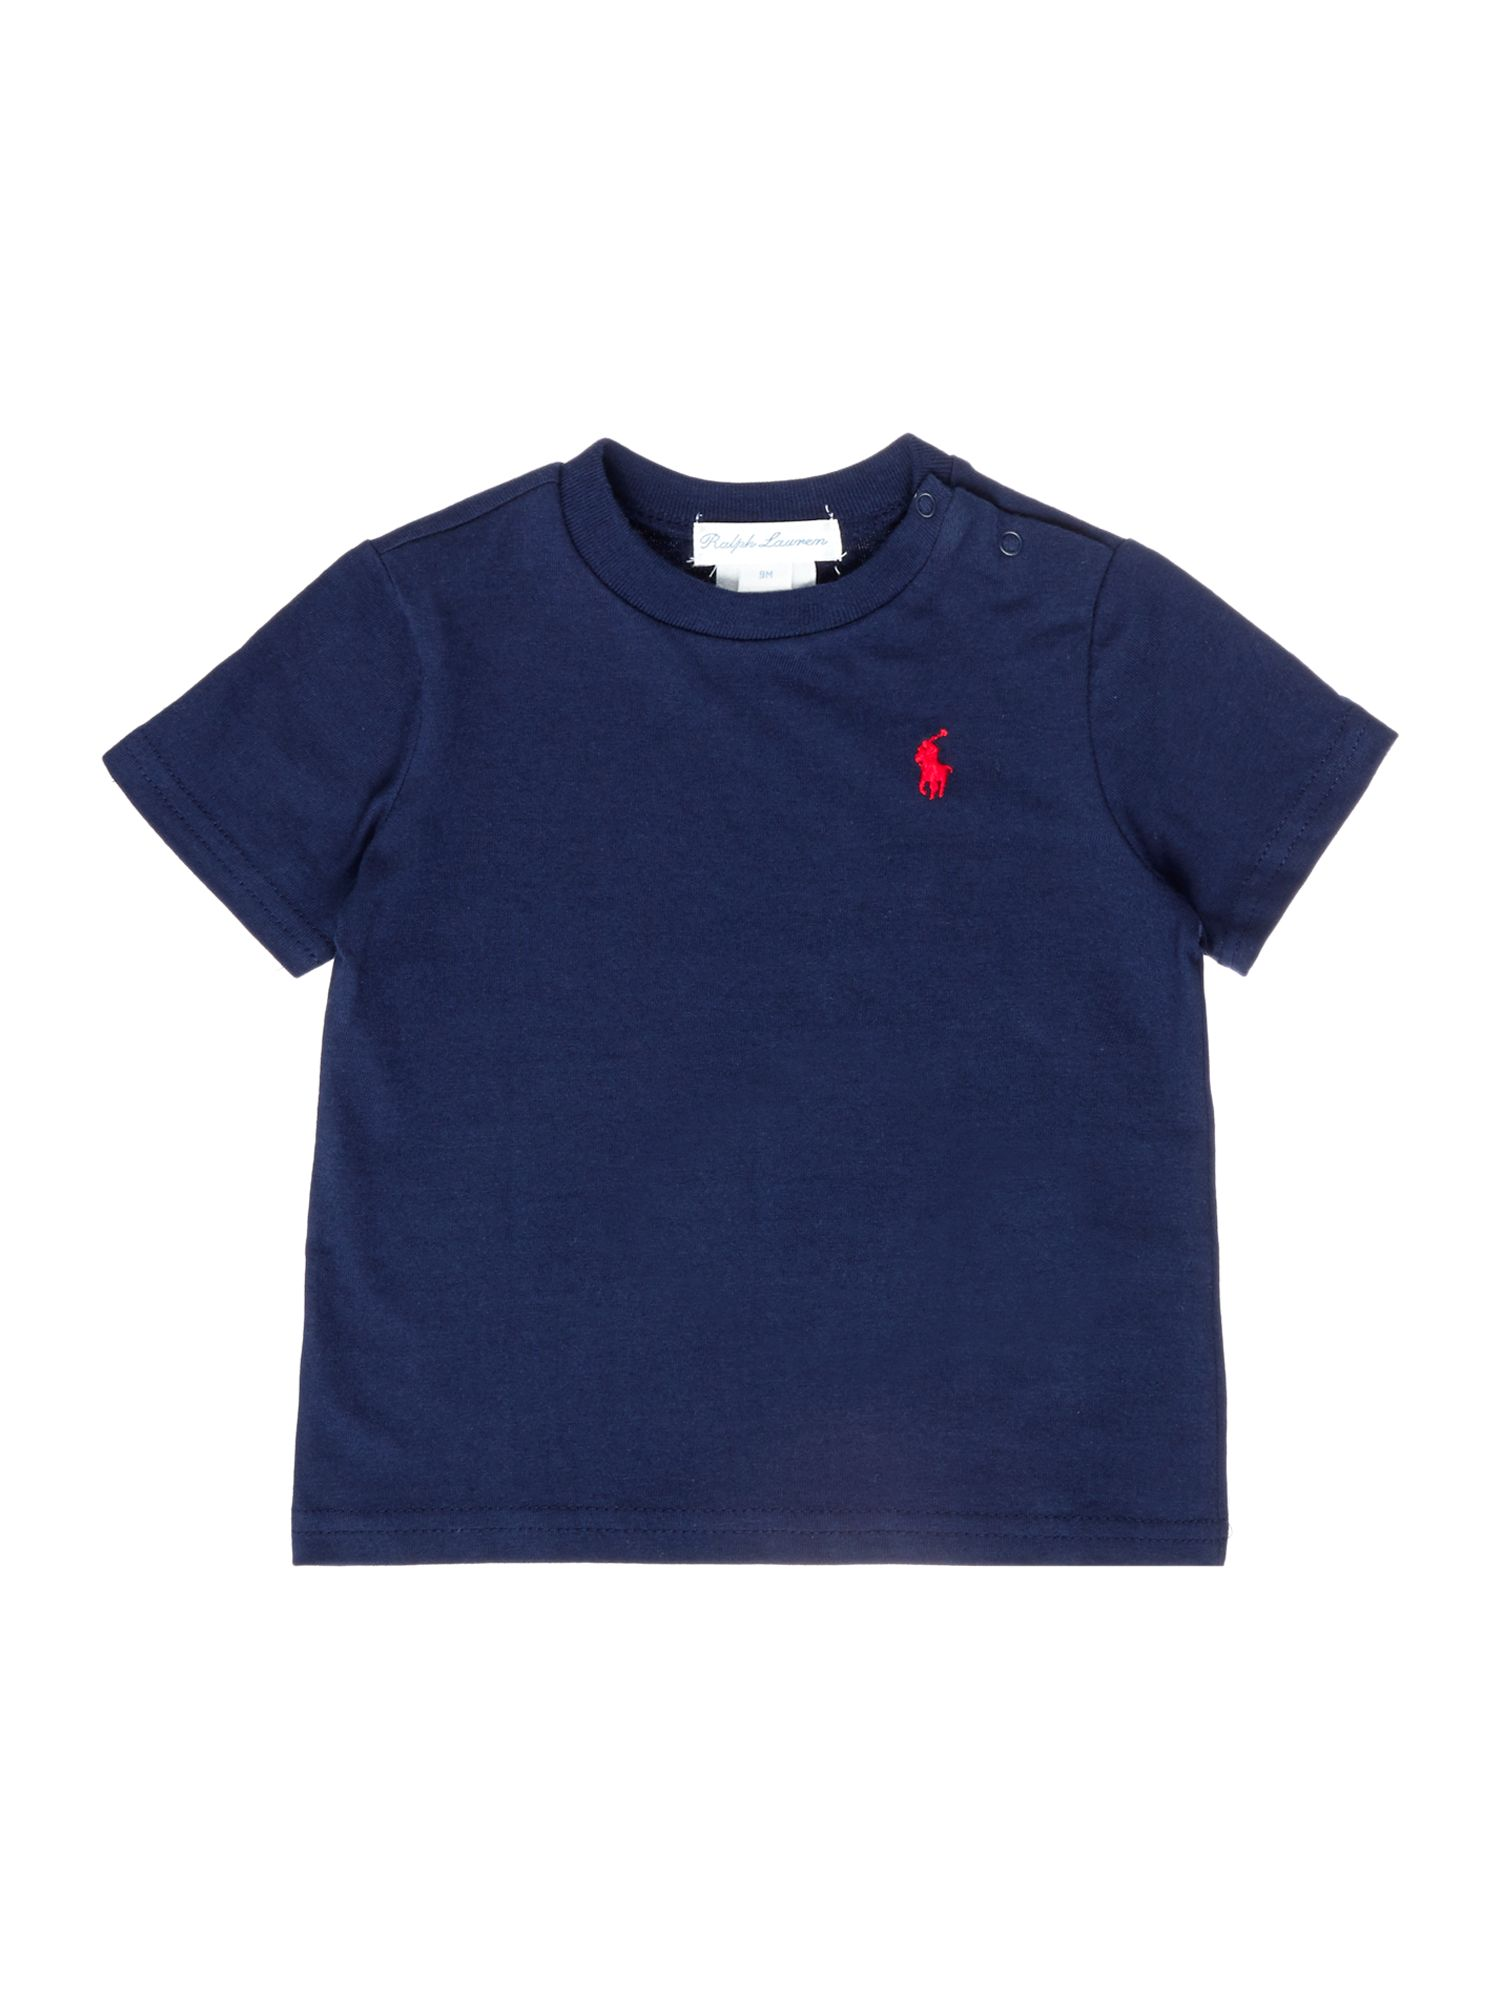 Boys Ralph Lauren T Shirt House Of Fraser